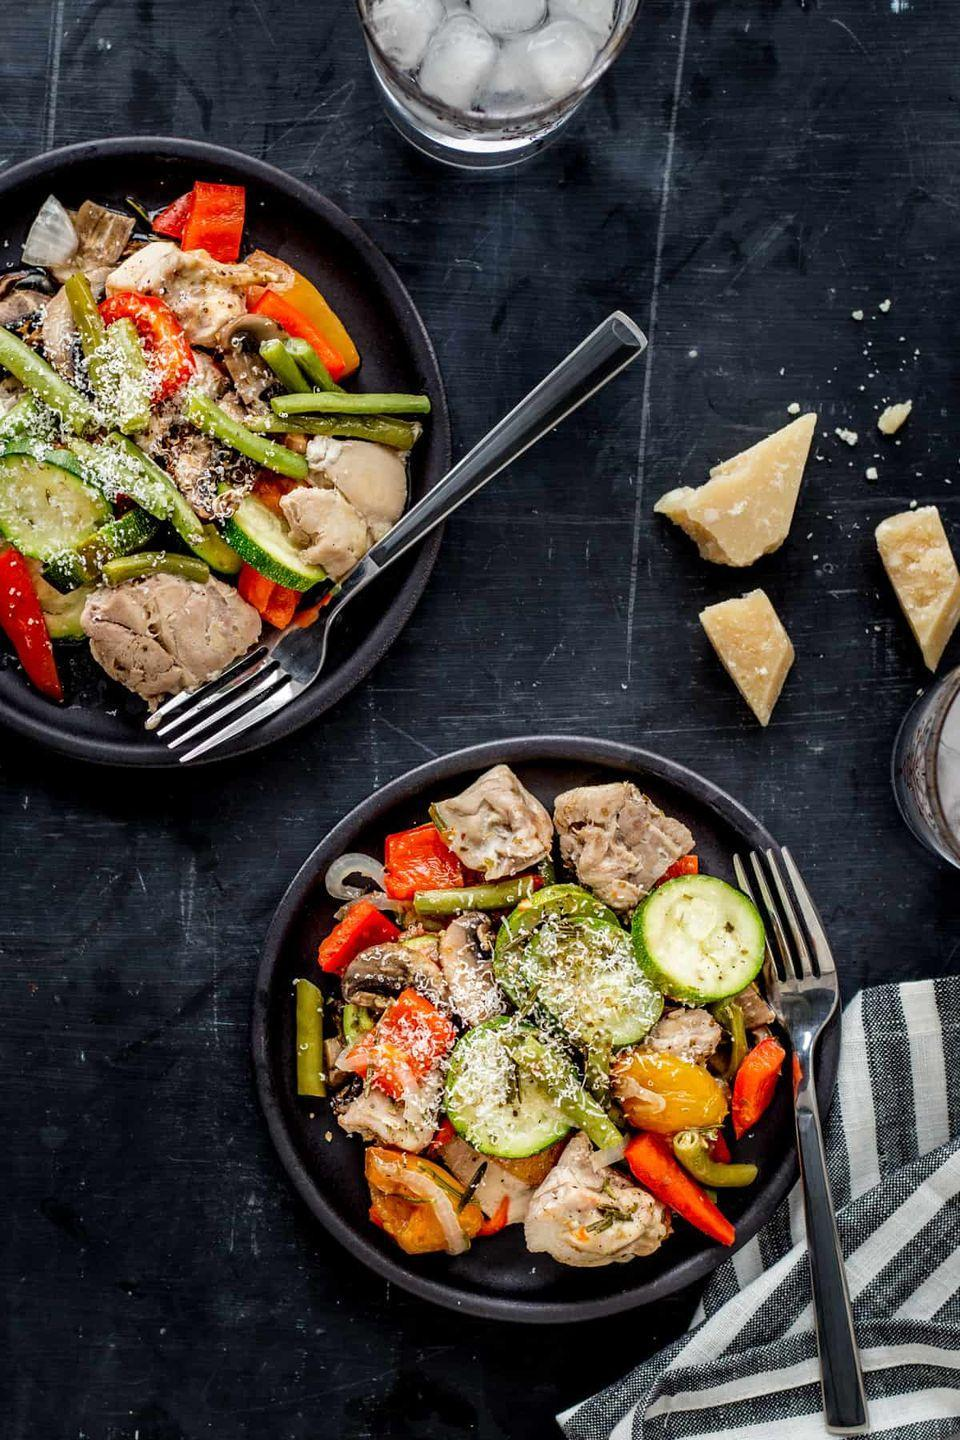 """<p>This chicken and veggie dish by<a href=""""https://helloglow.co/italian-chicken-veggie-foil-packs/"""" rel=""""nofollow noopener"""" target=""""_blank"""" data-ylk=""""slk:Hello Glow"""" class=""""link rapid-noclick-resp""""> Hello Glow</a> is low in carbs (it's keto-approved) and high in antioxidant-rich veggies like mushrooms, bell peppers, tomatoes, onion, and zucchini. These veggies also have high water content, which is great for reducing bloating and making it easier to lose weight.</p>"""